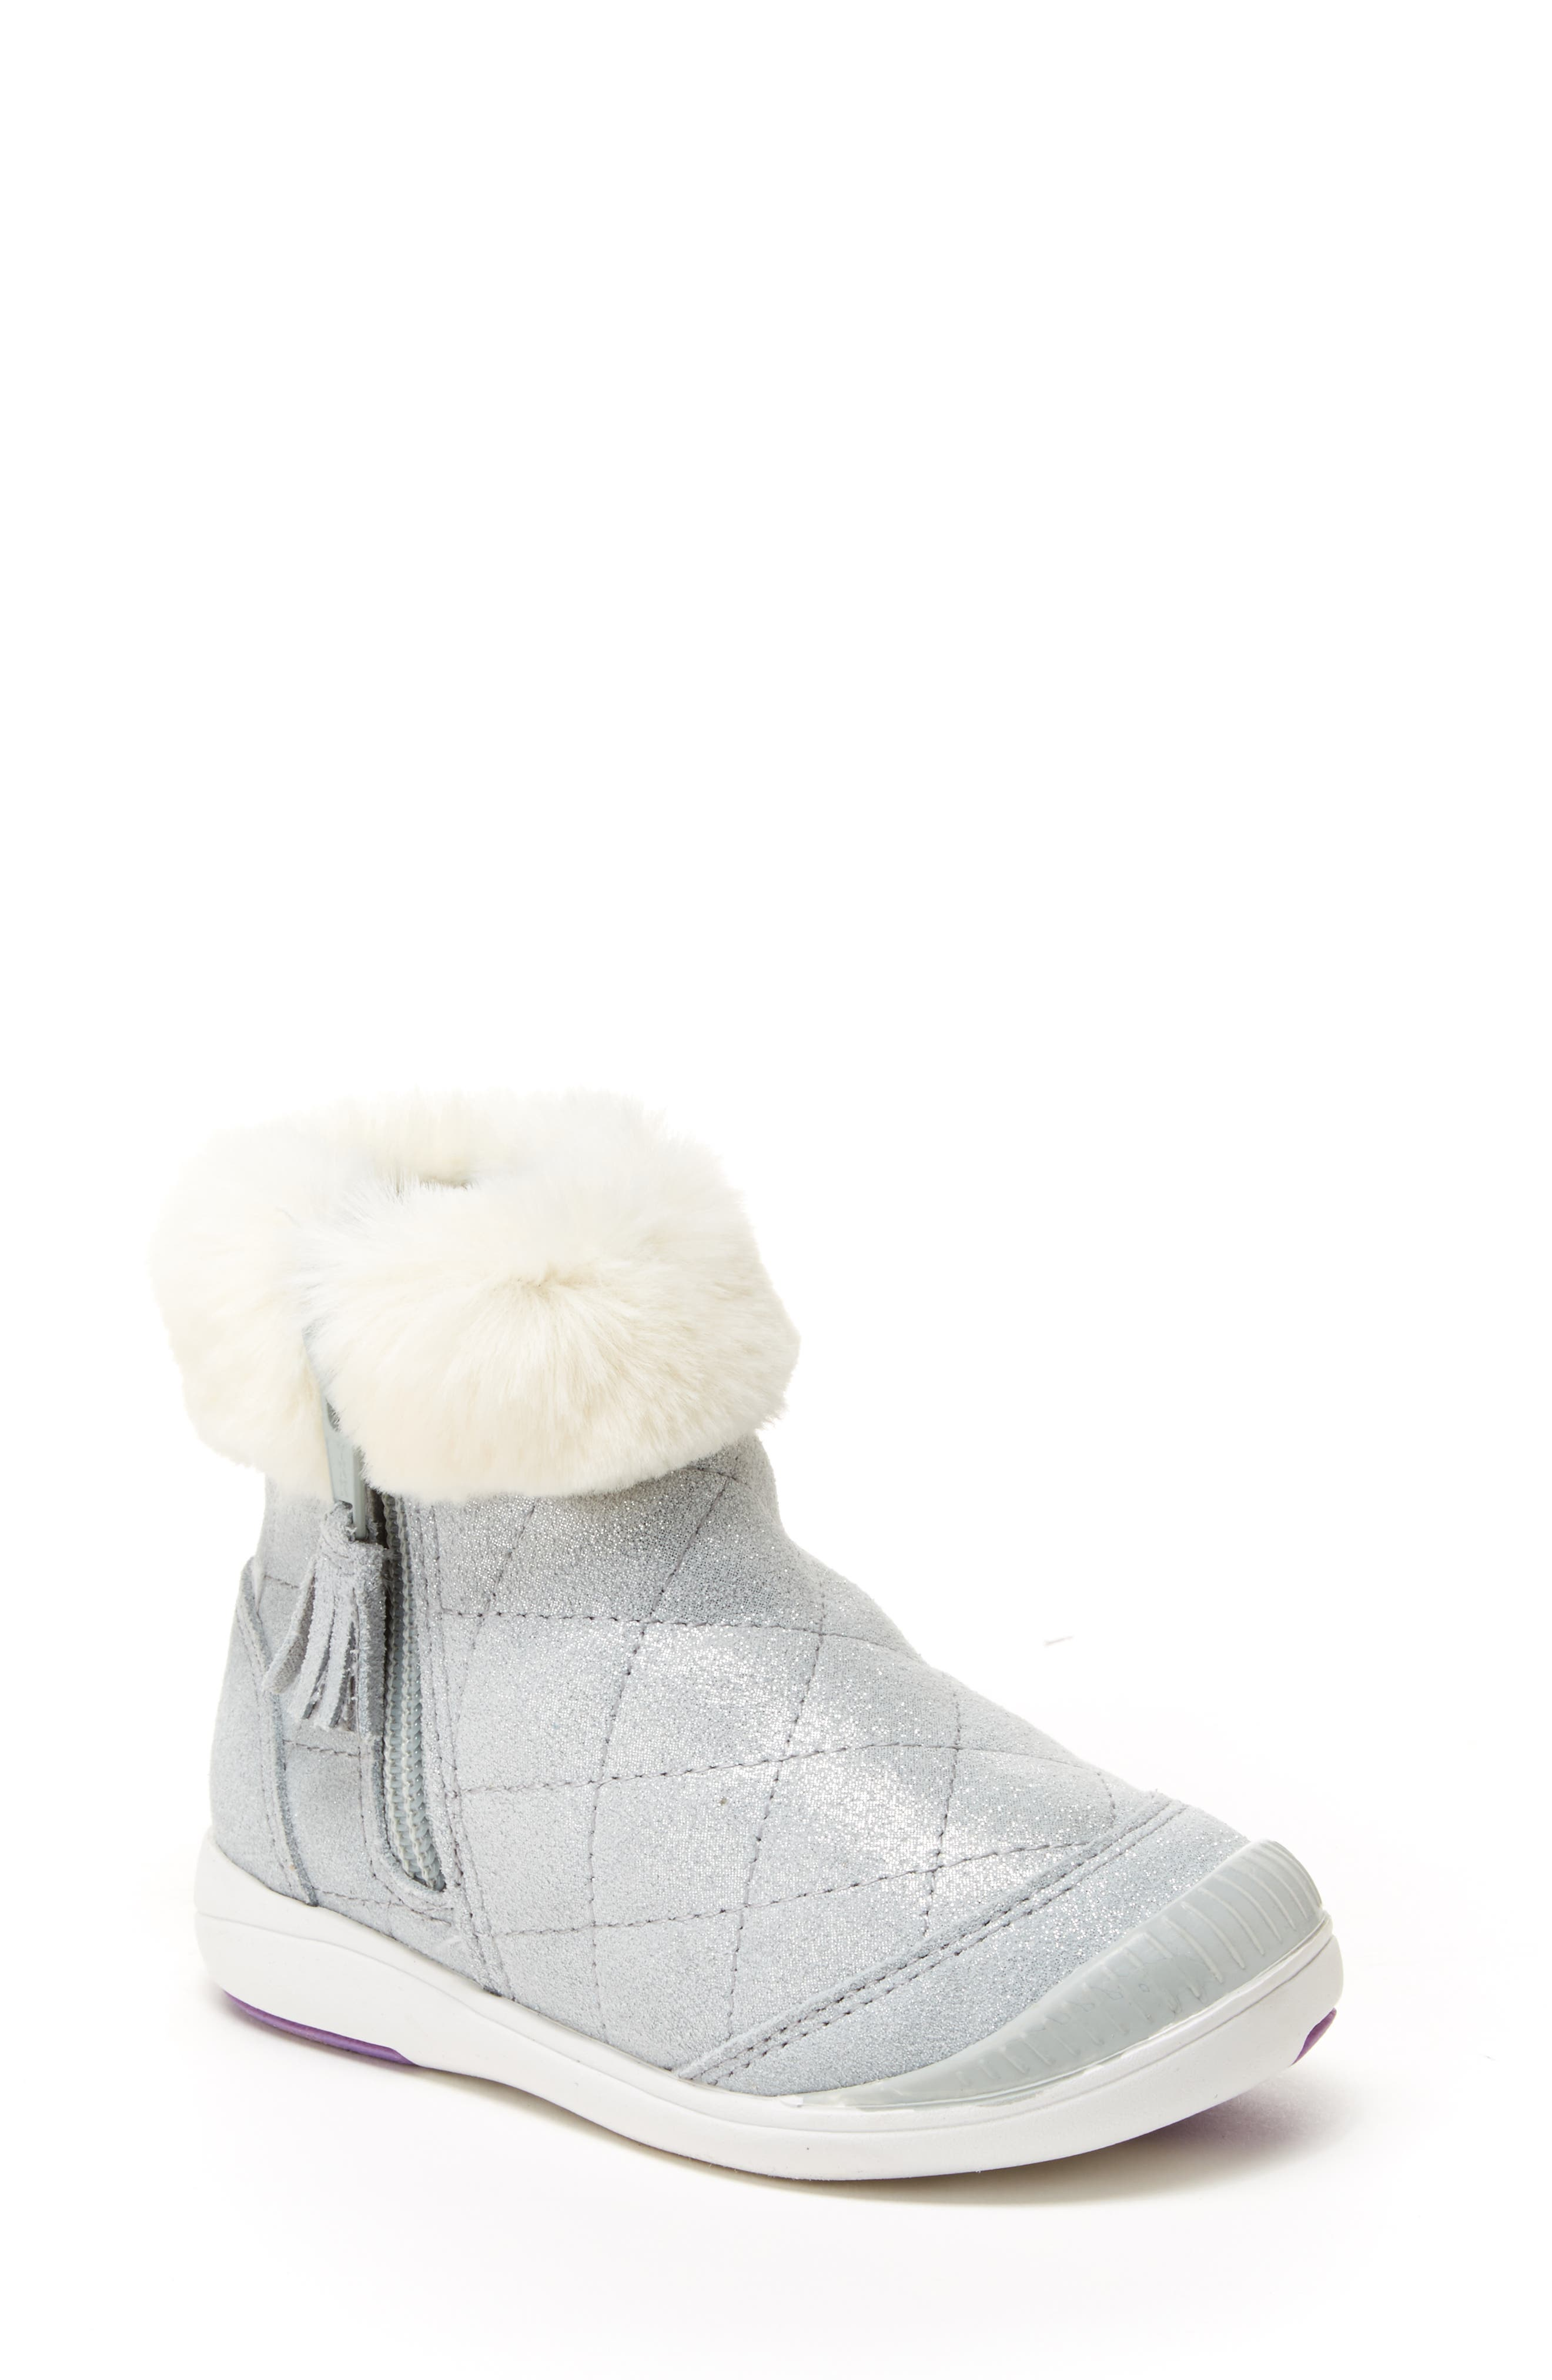 Chloe Faux Fur Quilted Bootie,                         Main,                         color, SILVER